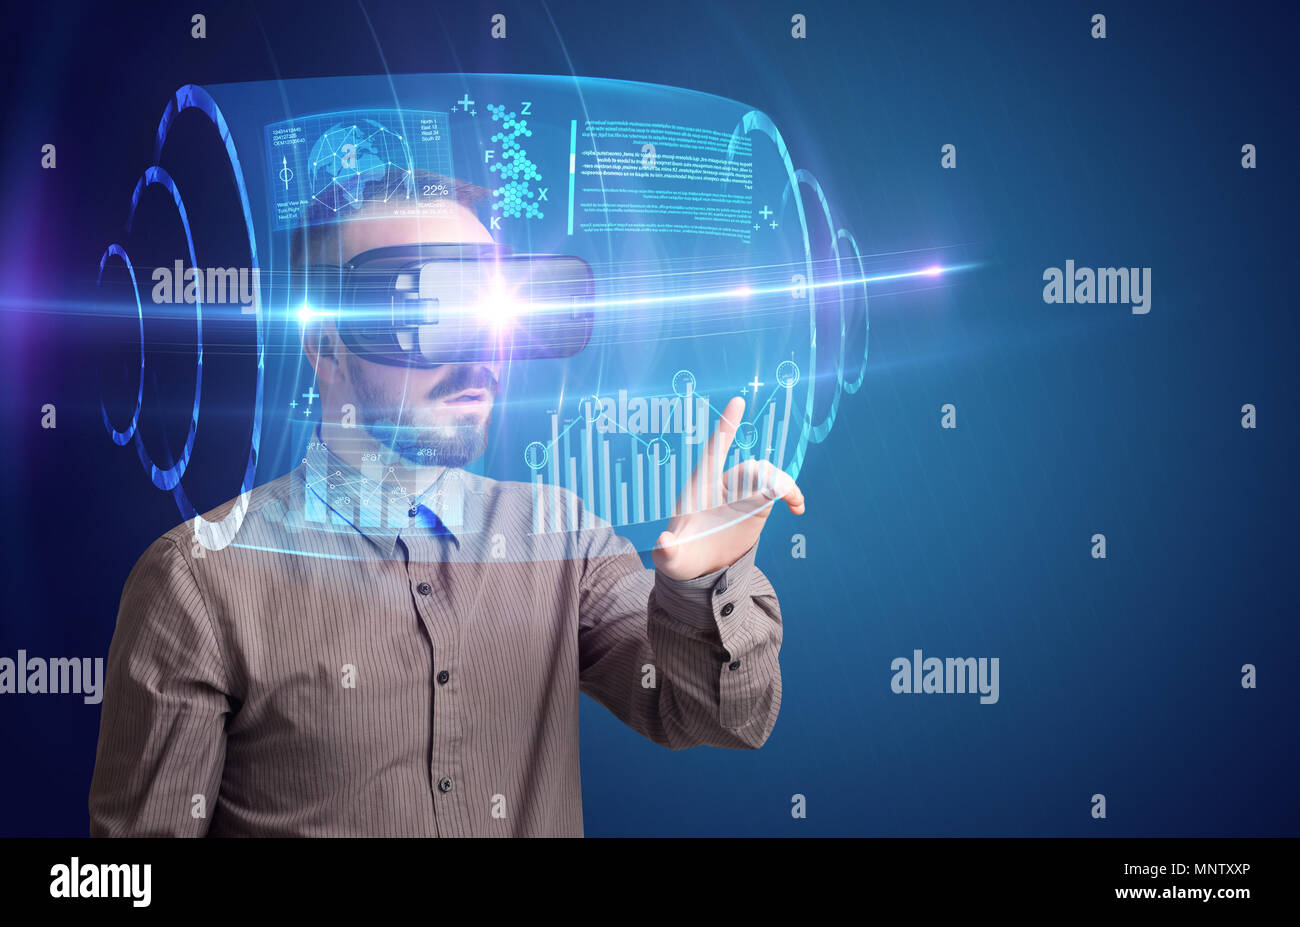 Amazed businessman with high tech 3D projection in front of